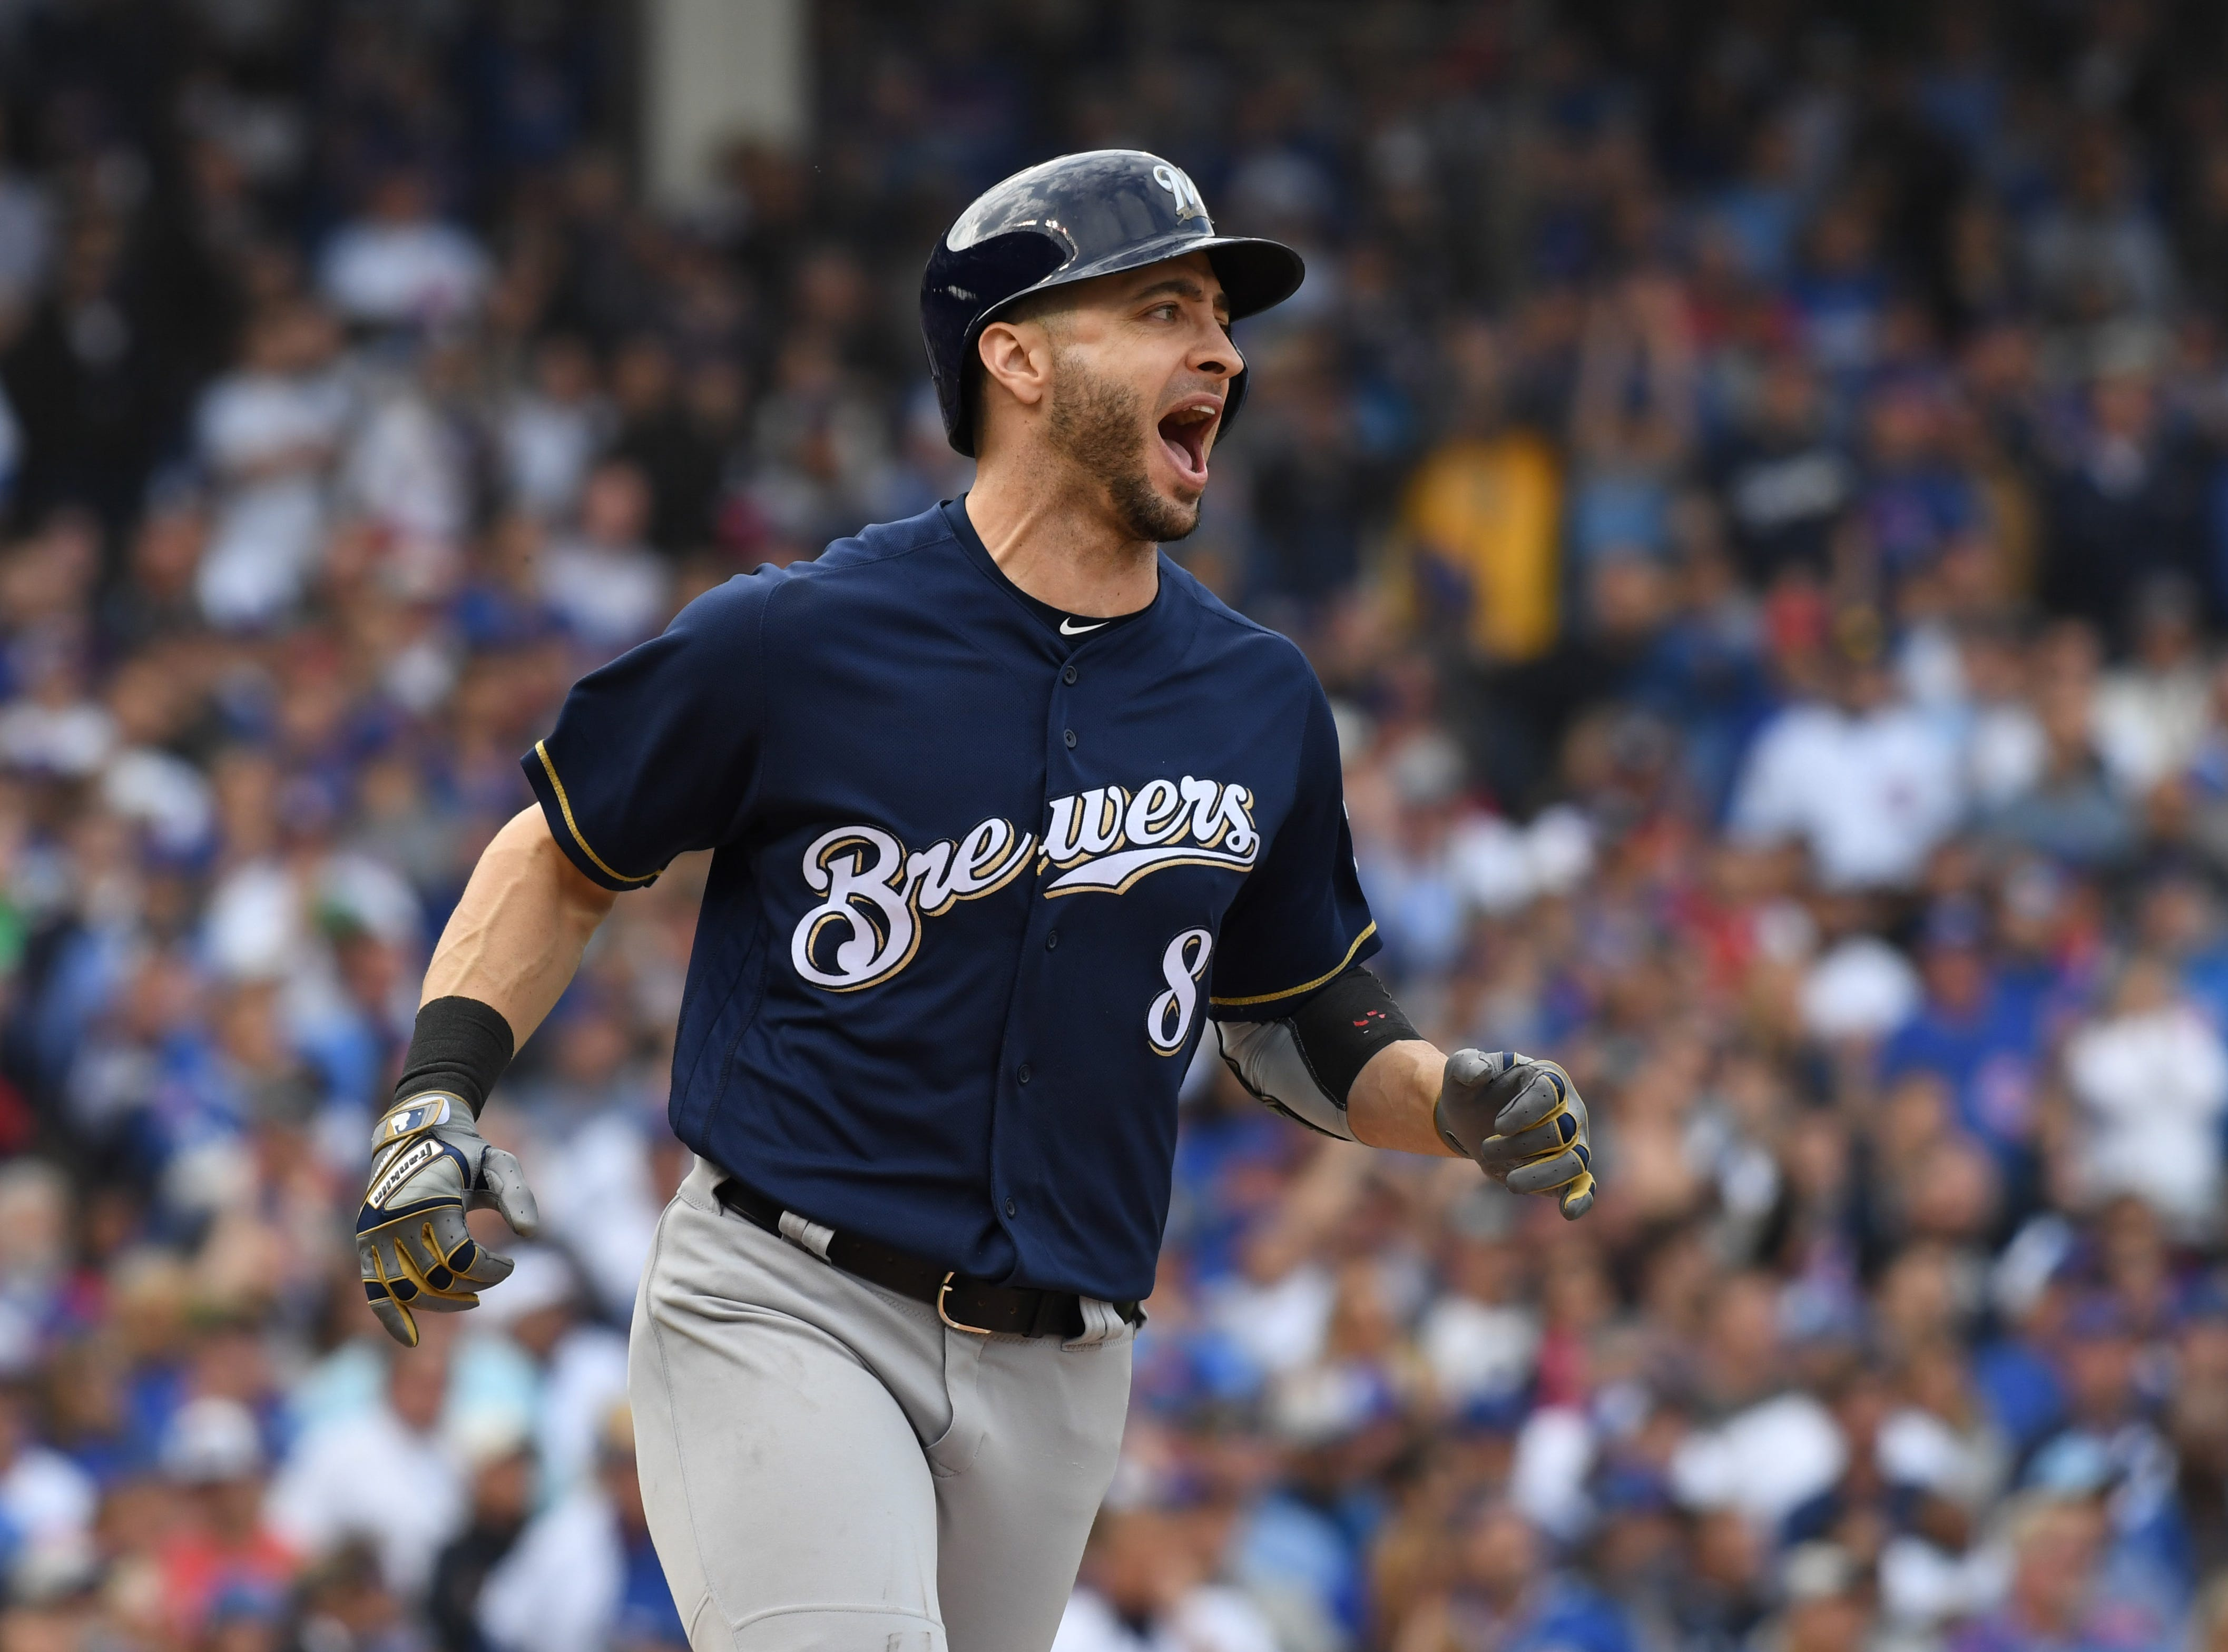 Brewers left fielder Ryan Braun reacts after hitting an RBI single in the eighth inning.